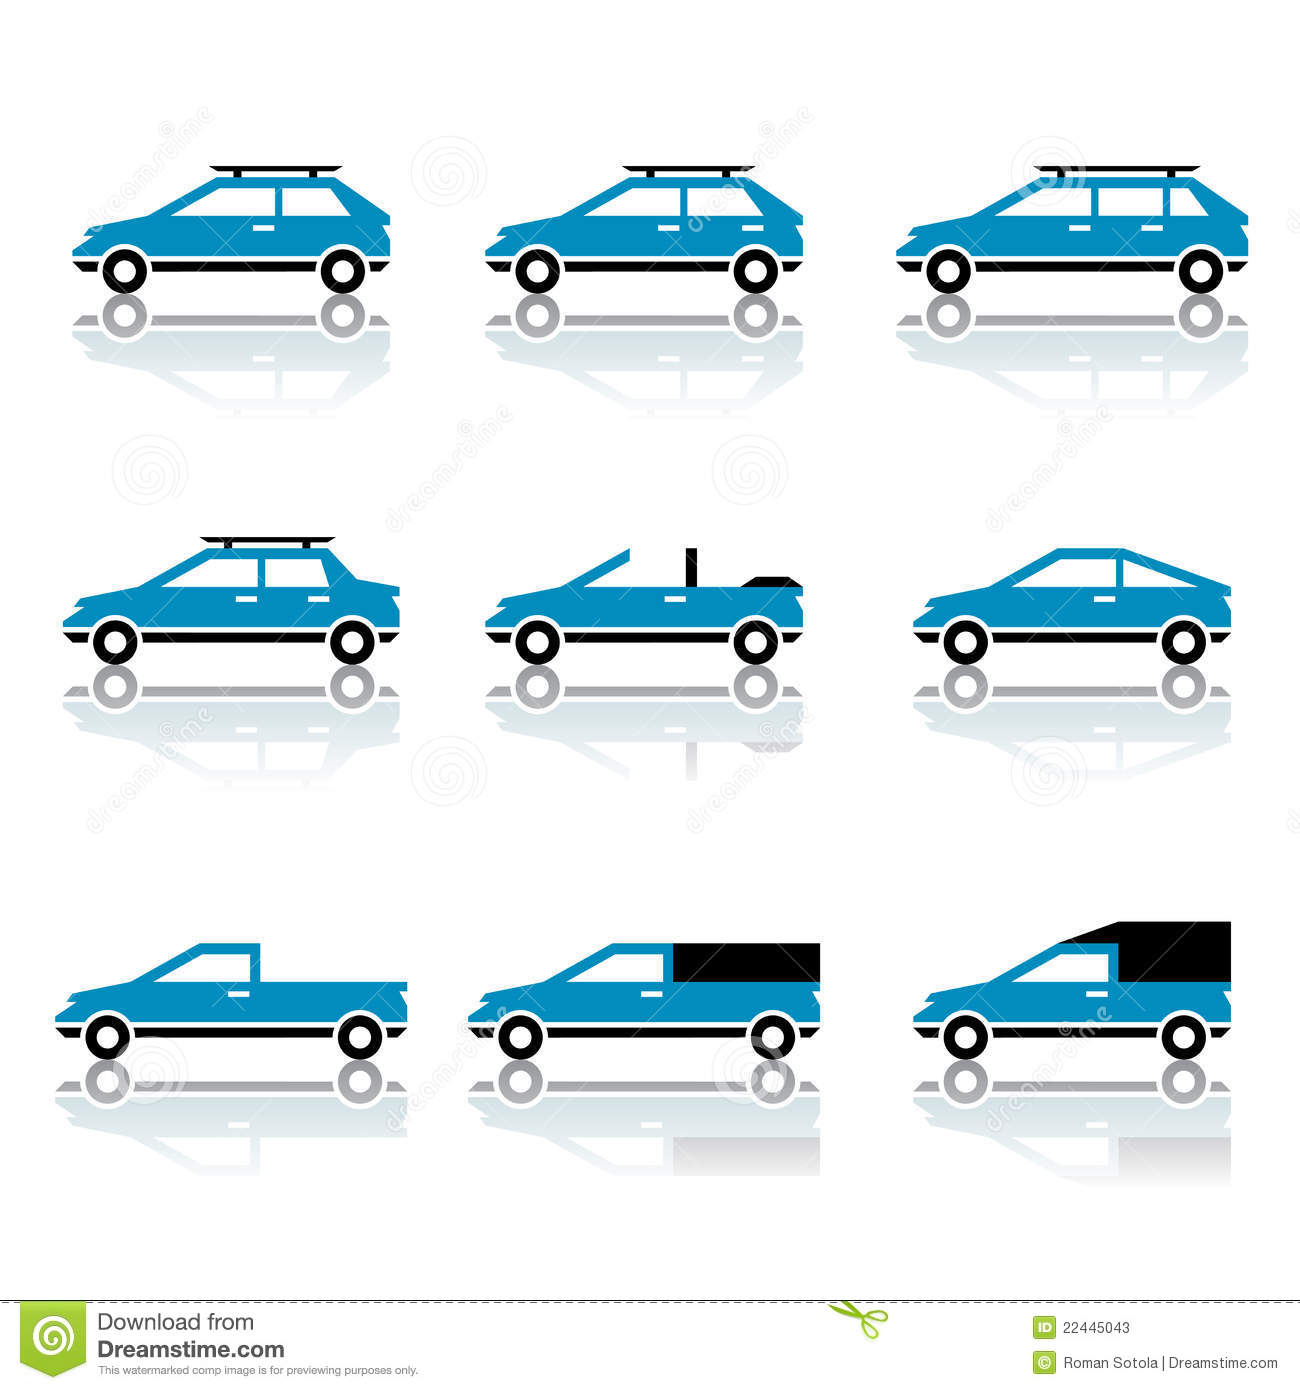 Warning Light Dash What Does Mean 107768 together with 22 moreover Classes Of Drugs together with 21 also 783ffe81b242ff91. on mercedes benz types